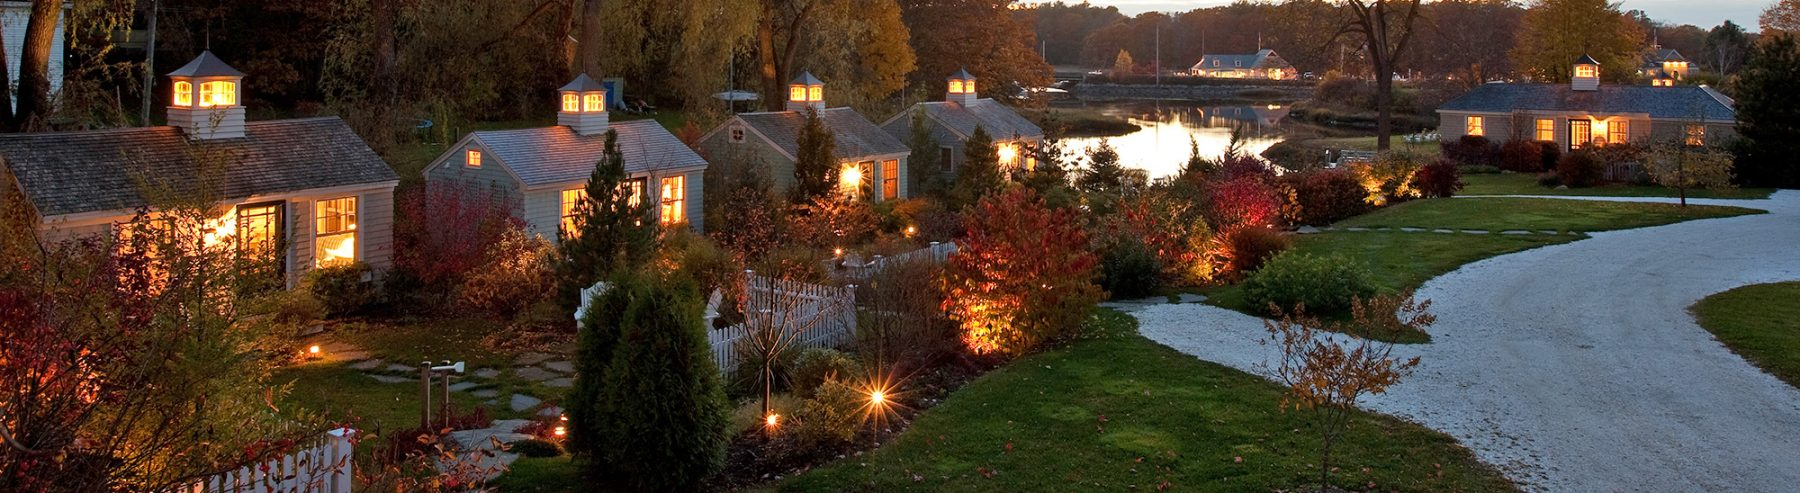 Cabot Cove Cottages Kennebunkport Maine